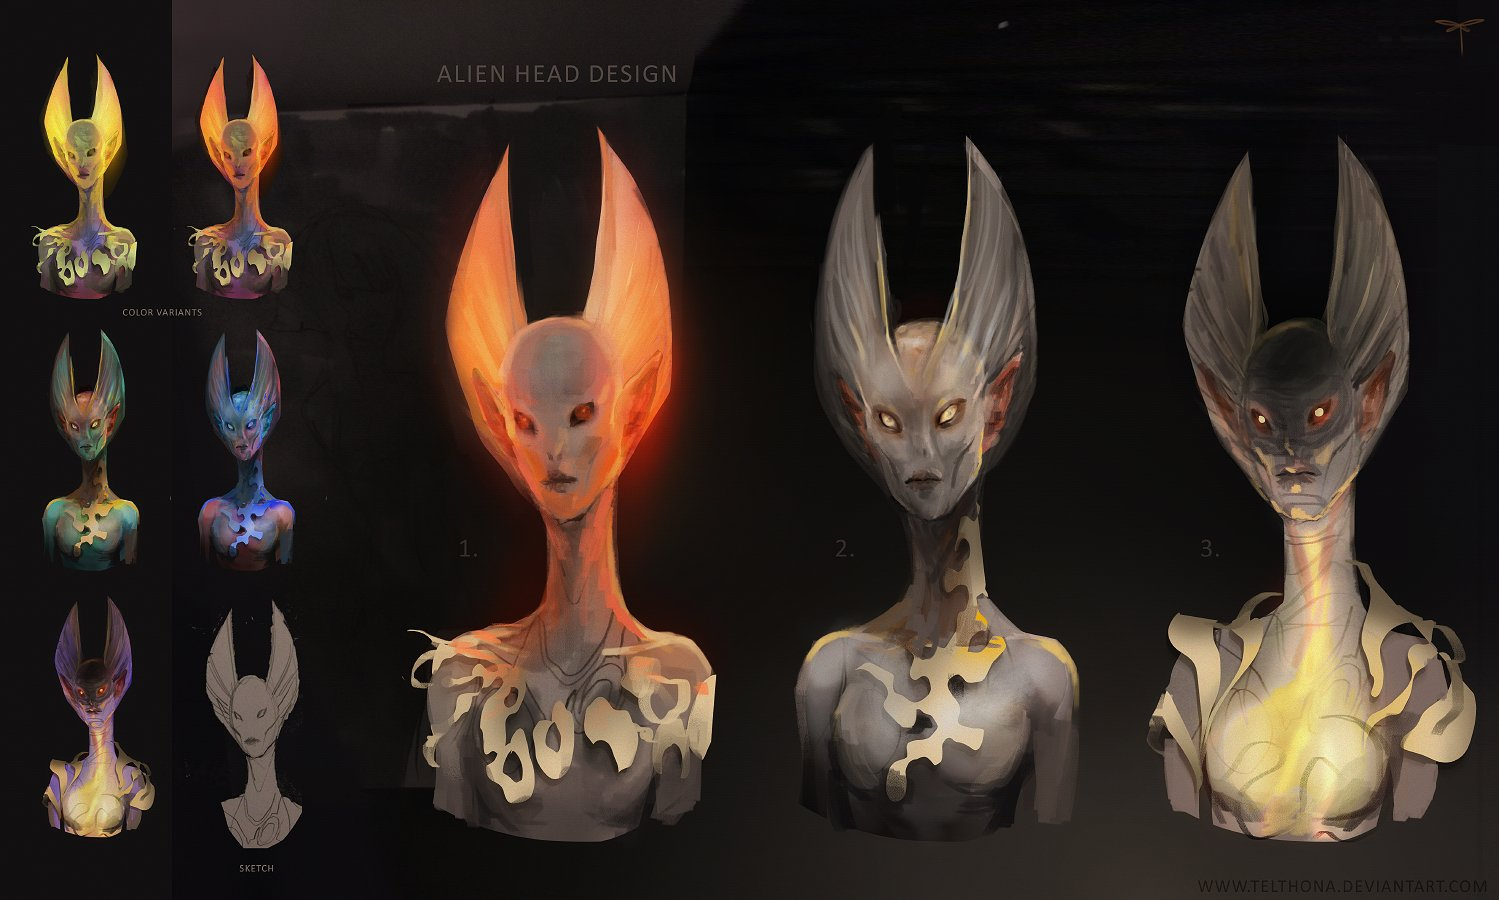 Alien Head Design